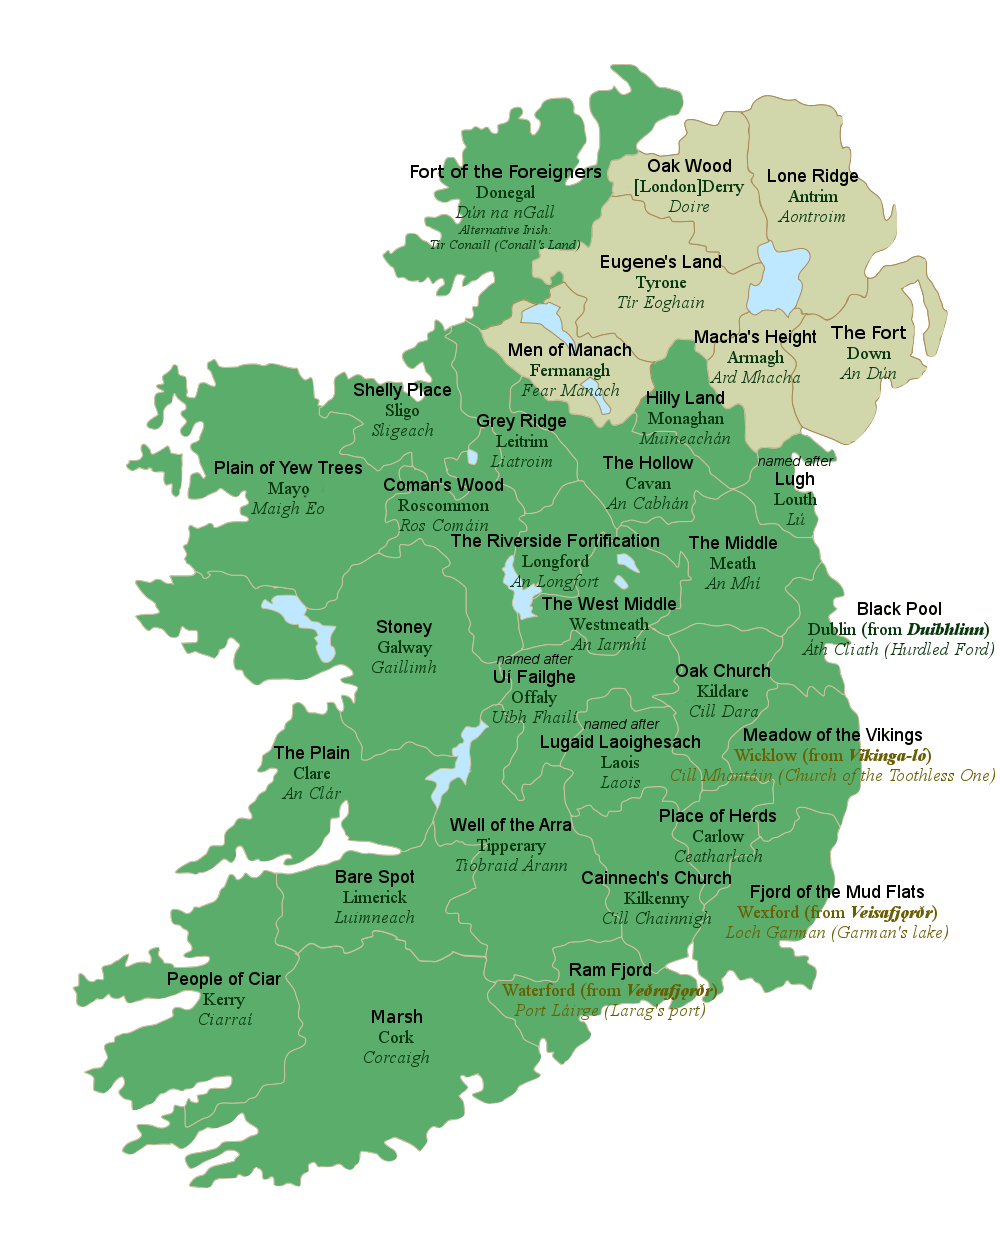 All 32 counties of Ireland with their literal English translations For a full size image  click here